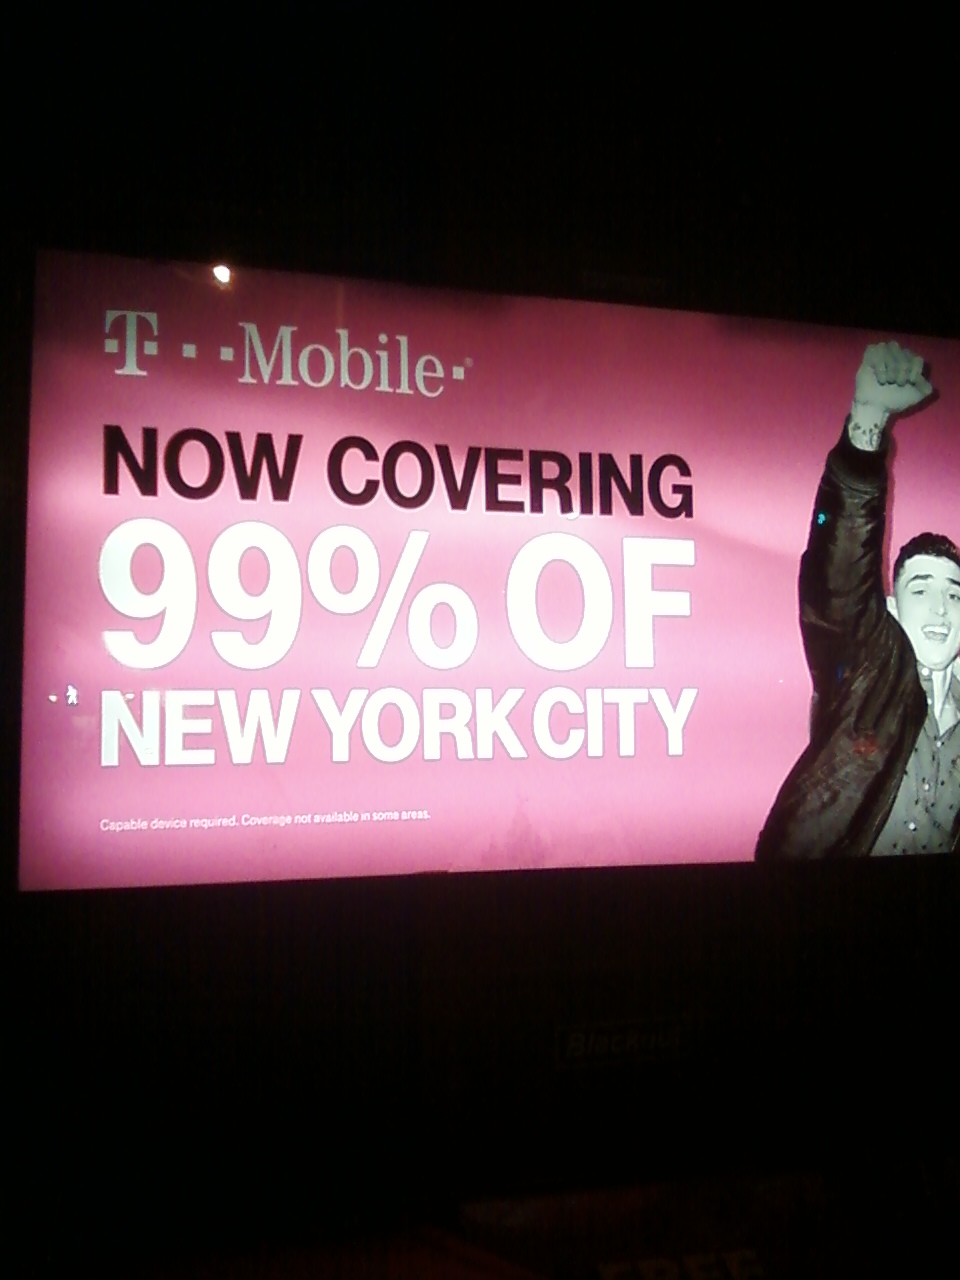 T-Mobile ad over a west side IRT station in NYC indicating that T-Mobile covers 99 percent of New York City, yet generally it seems coverage is a lot worse. For further details, please visit www.wirelessnotes.org.